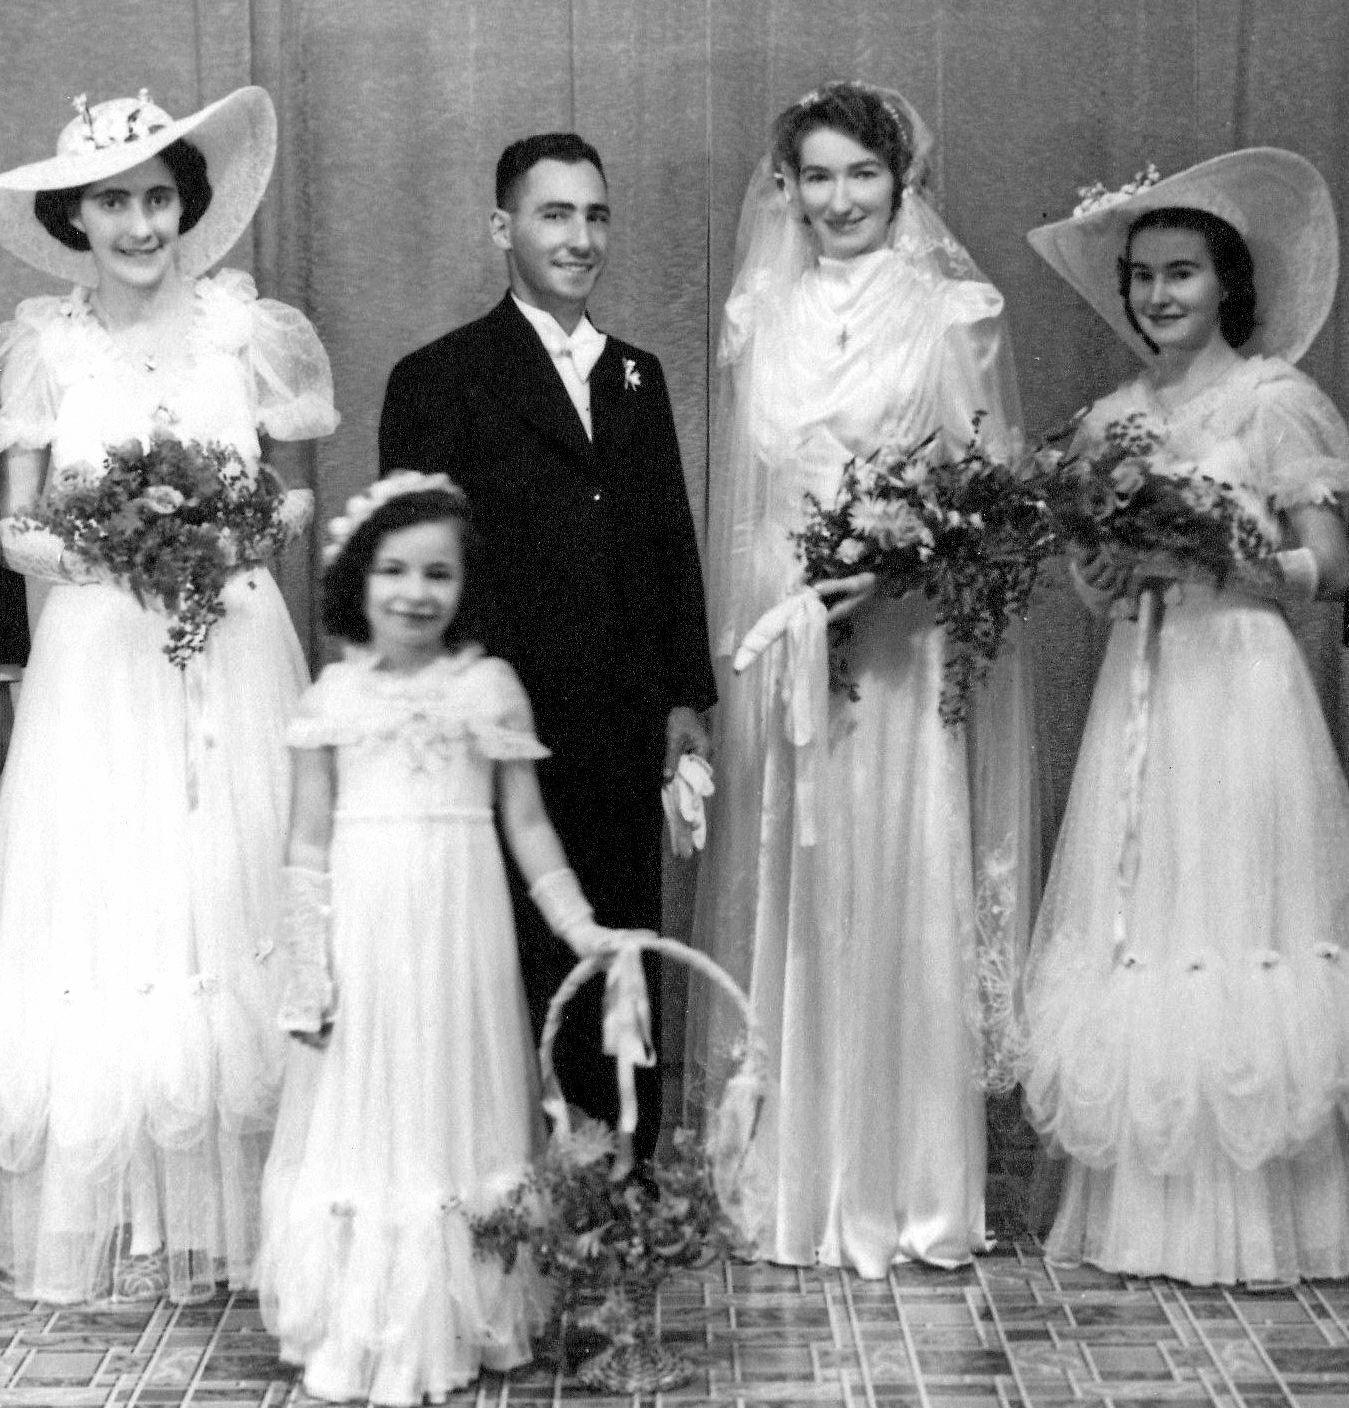 Cath McCarthy and Juan Porqueras on their wedding day, June 6, 1941.